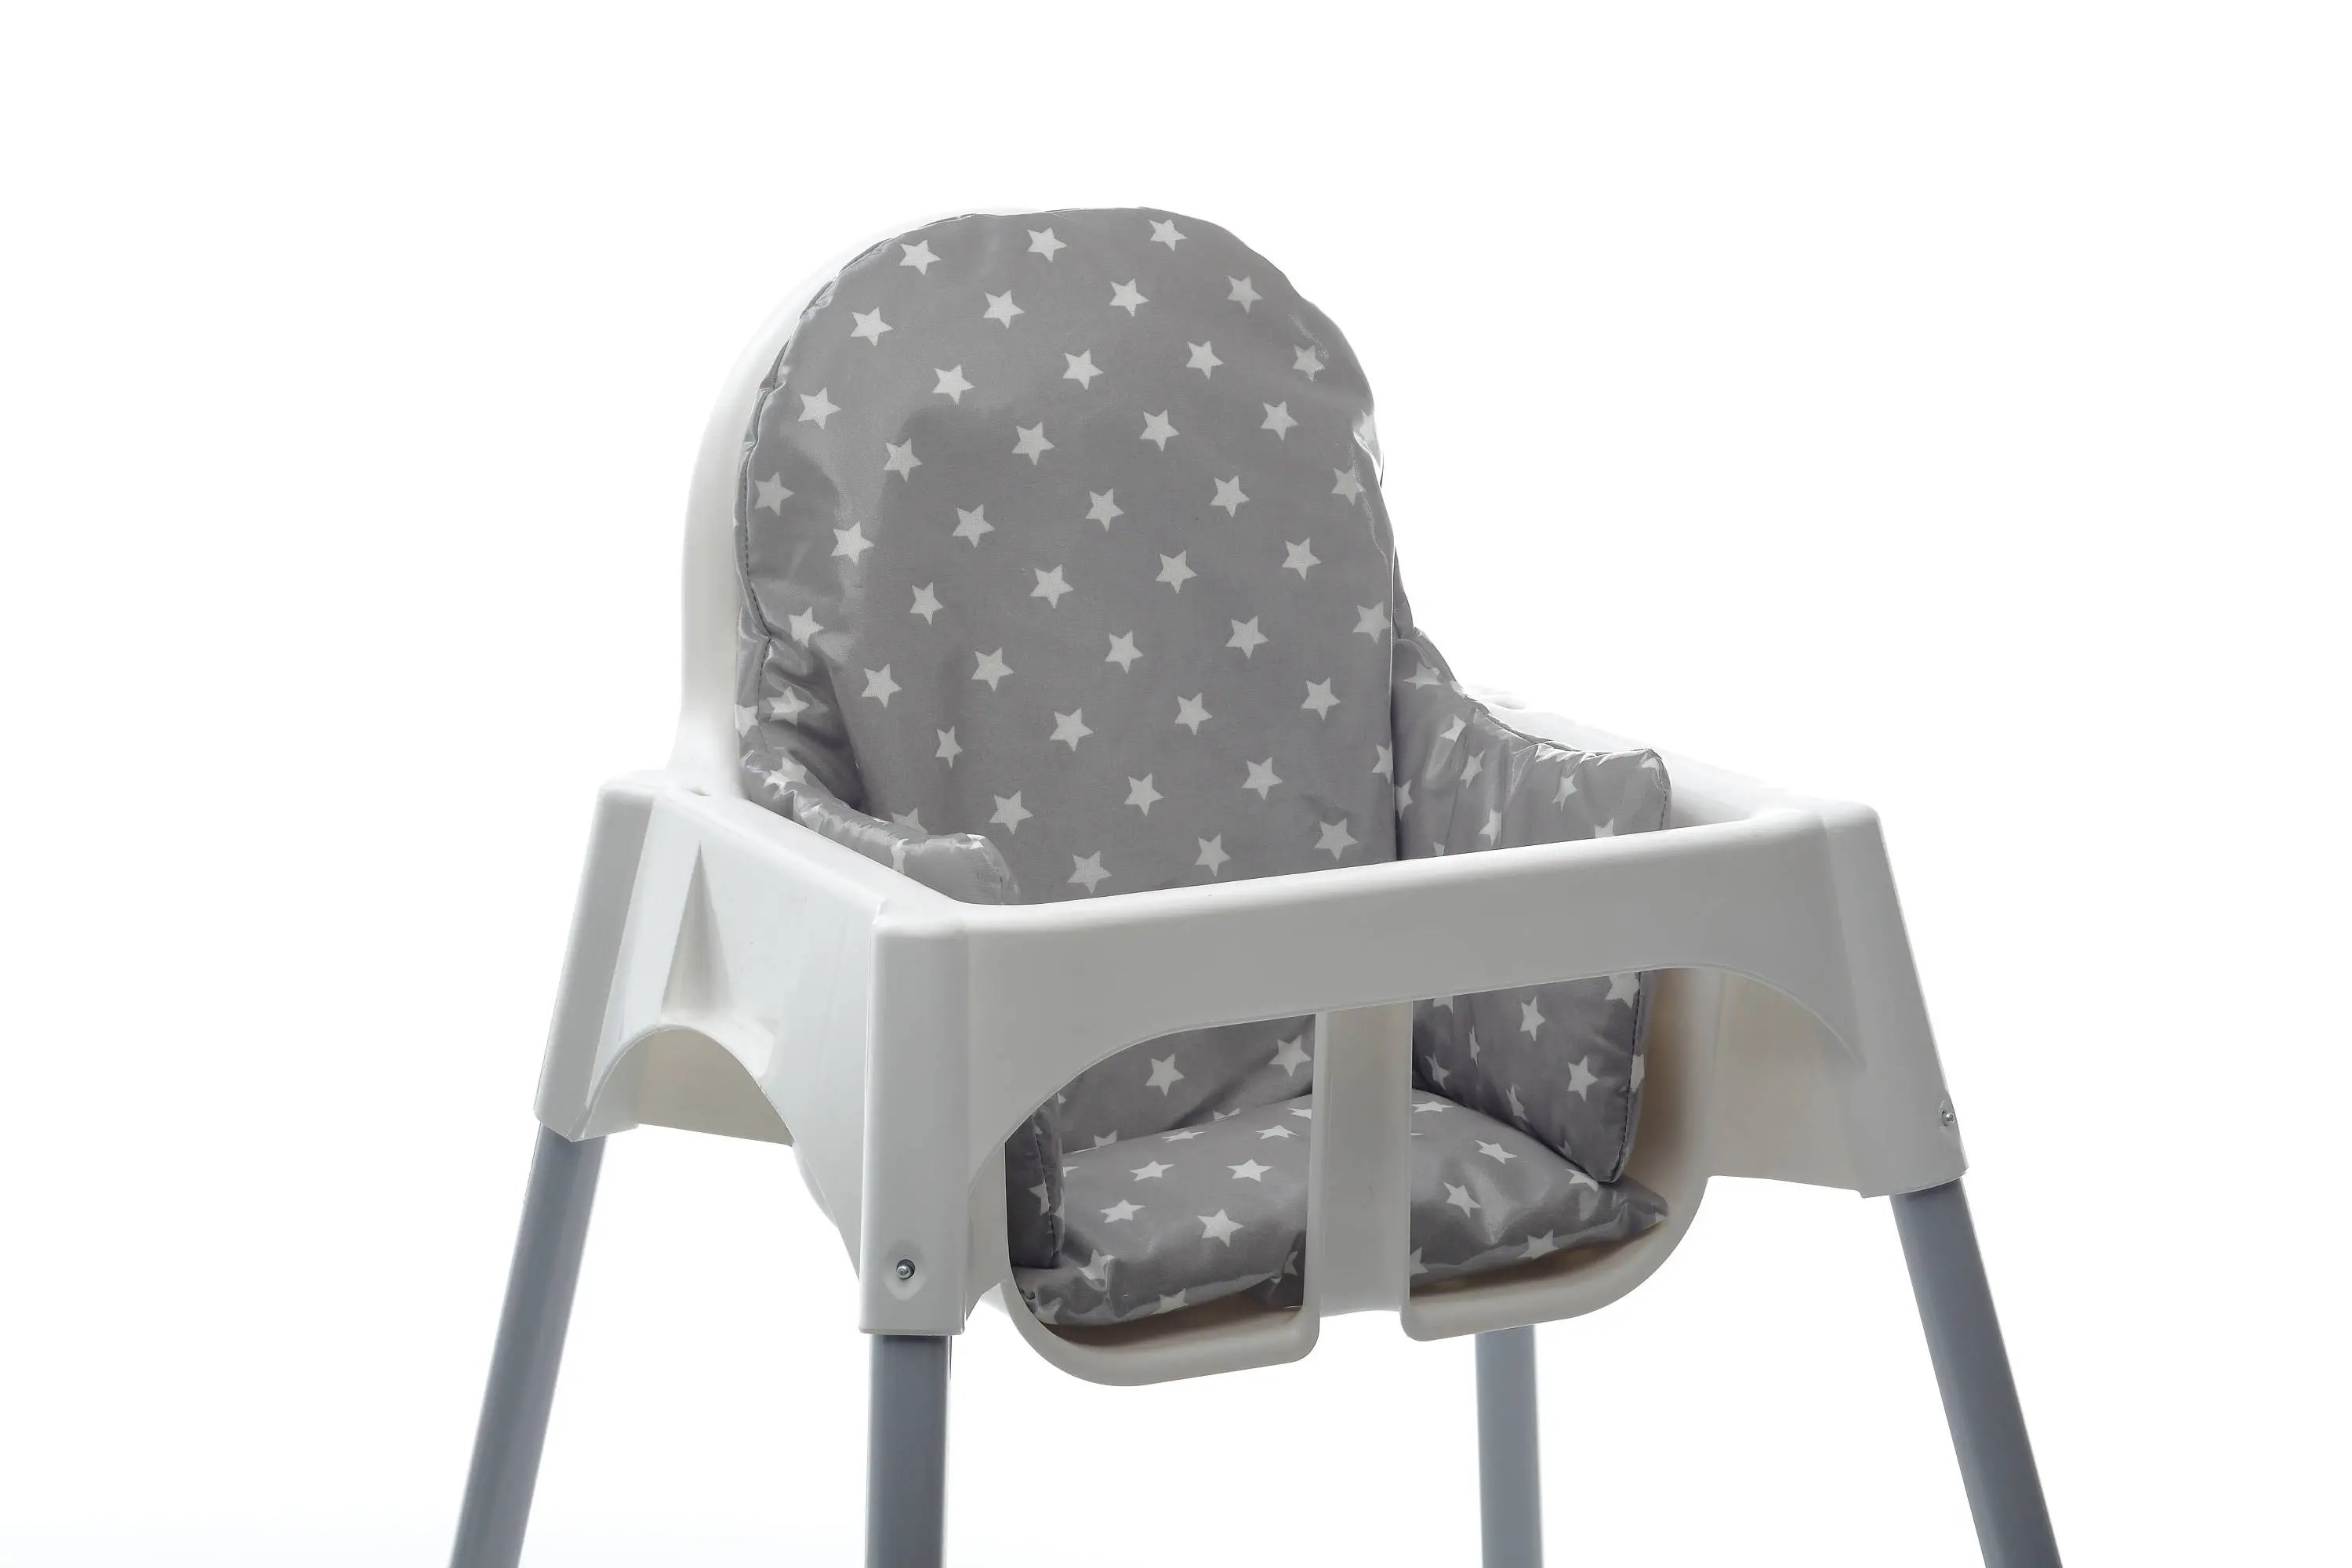 Ikea High Chair Insert High Chair Cushion Insert Super Snug Supportive And Wipe